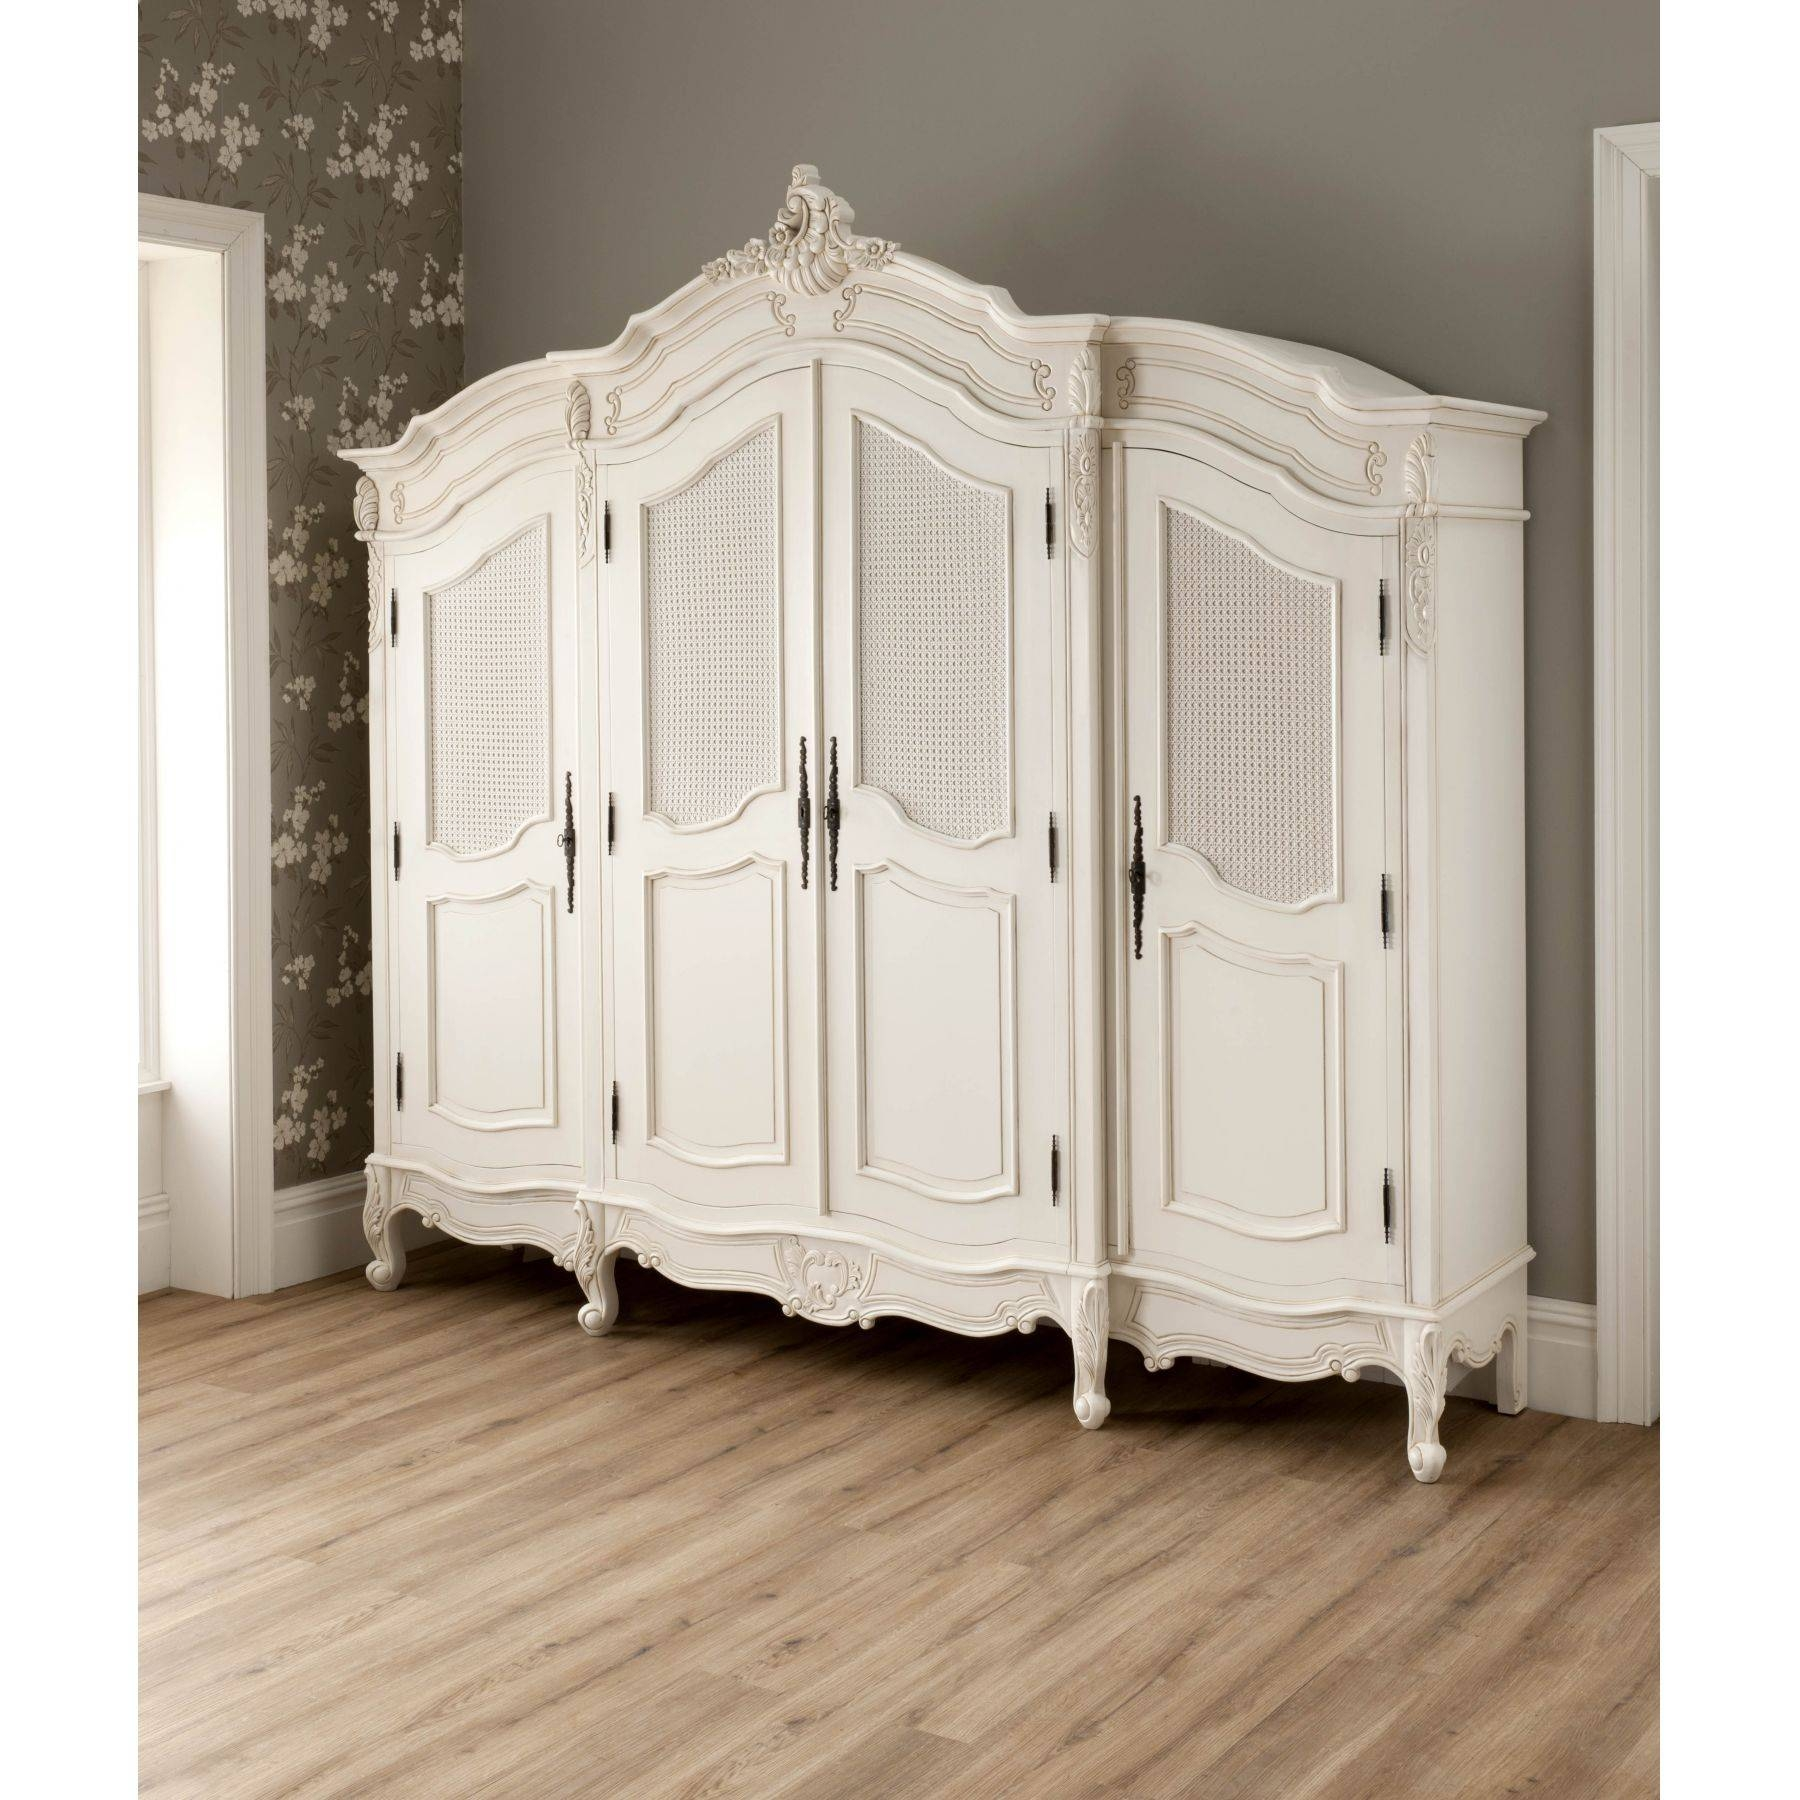 La Rochelle Antique French Wardrobe Works Wonderful Complimented inside French Built in Wardrobes (Image 12 of 15)